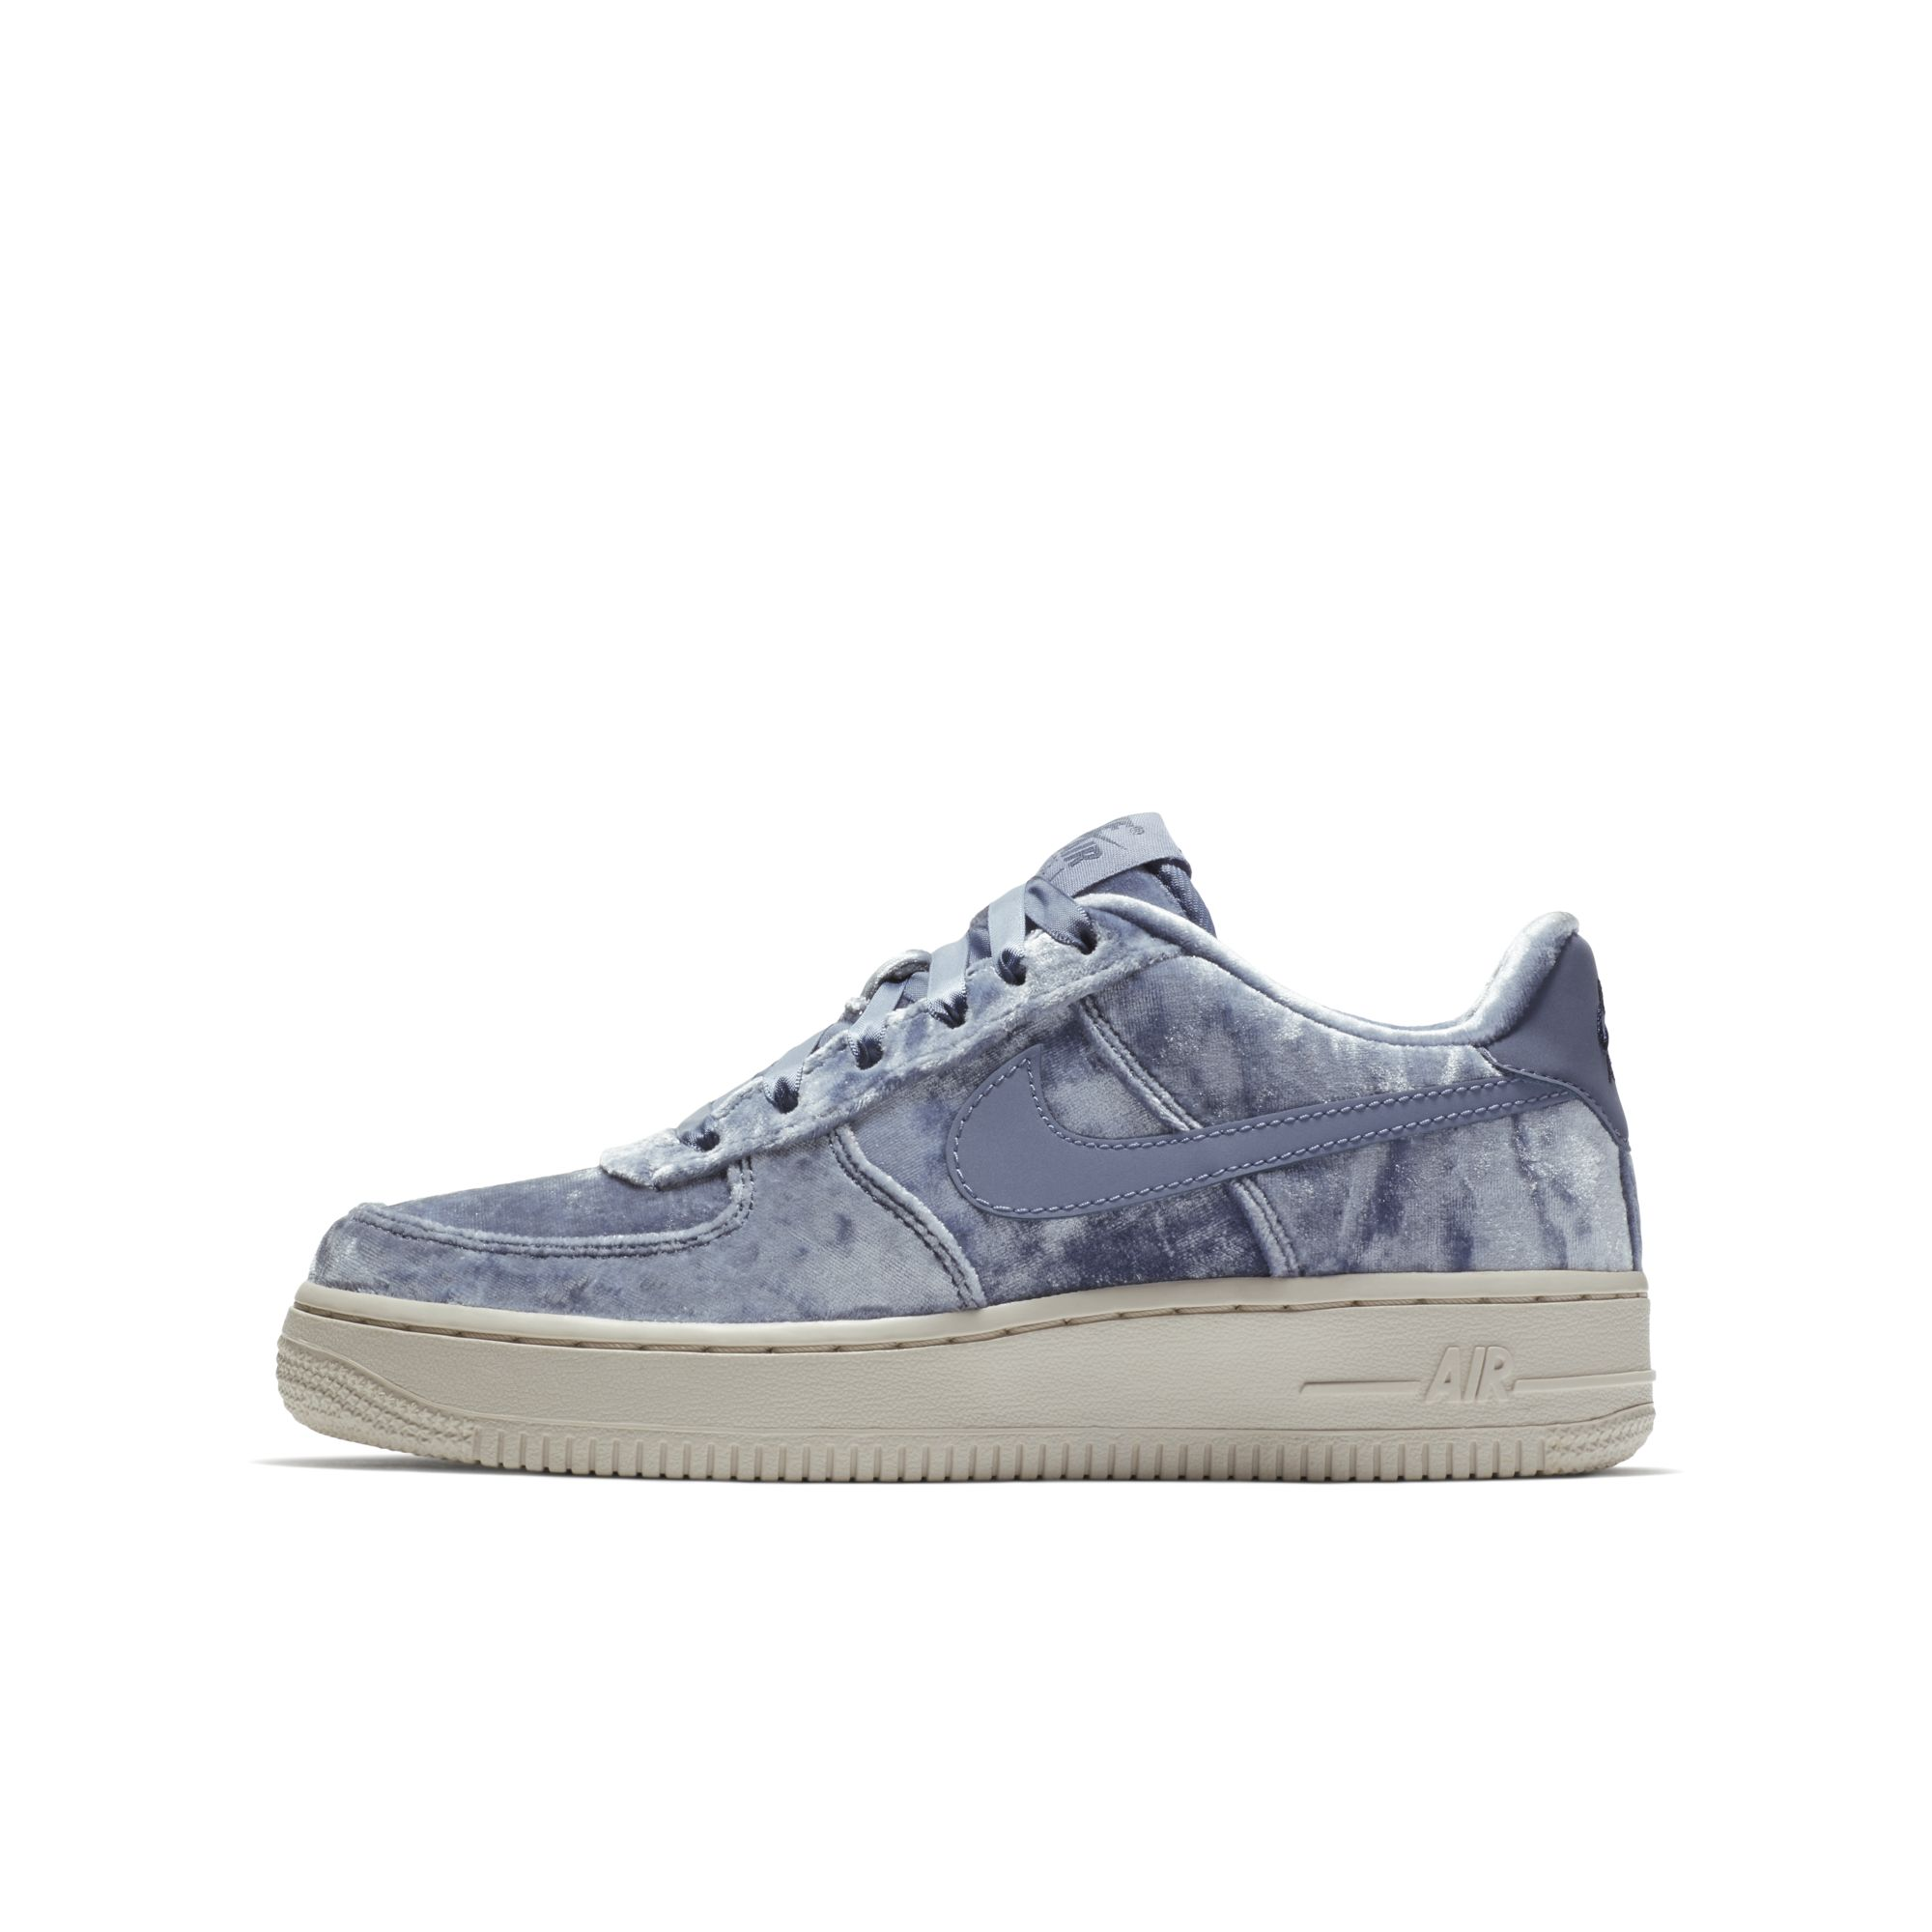 velour nike air force 1 dark sky blue 2